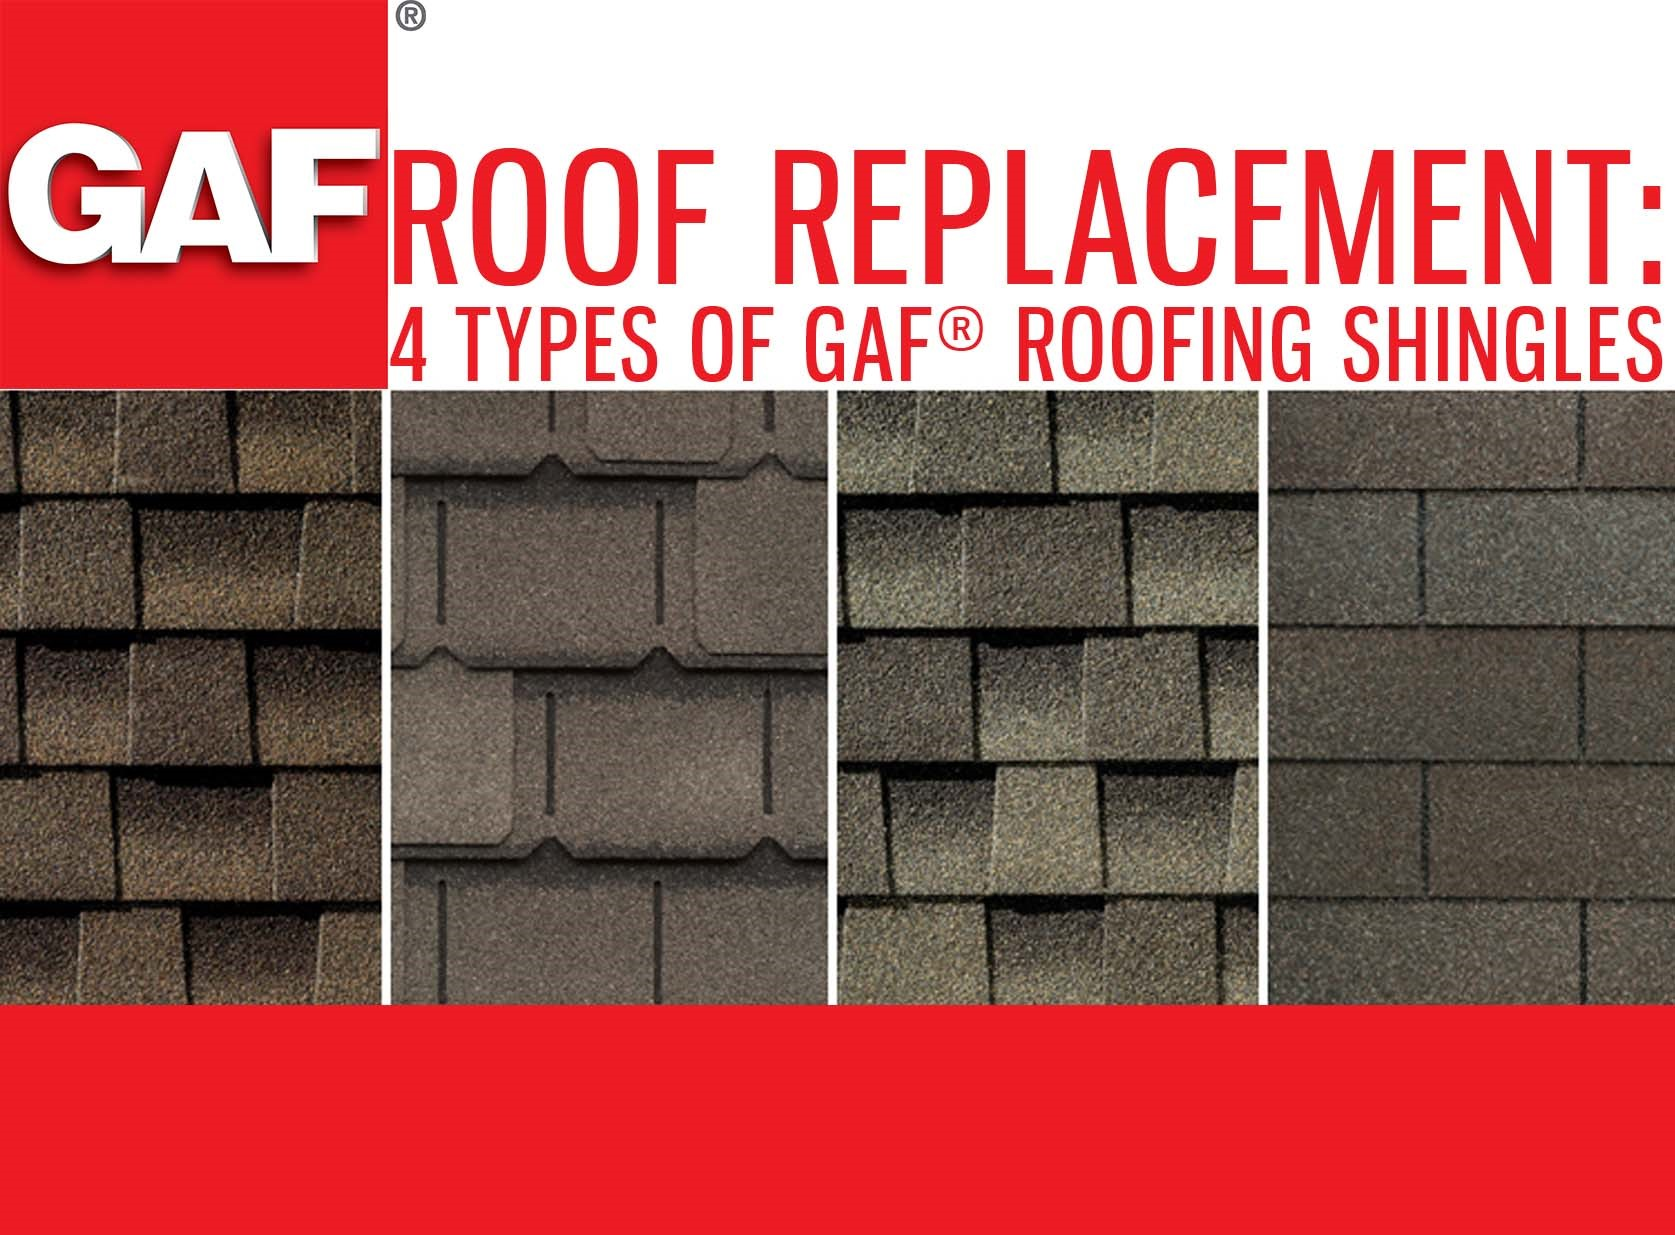 Roof replacement 4 types of gaf roofing shingles Type of roofing materials